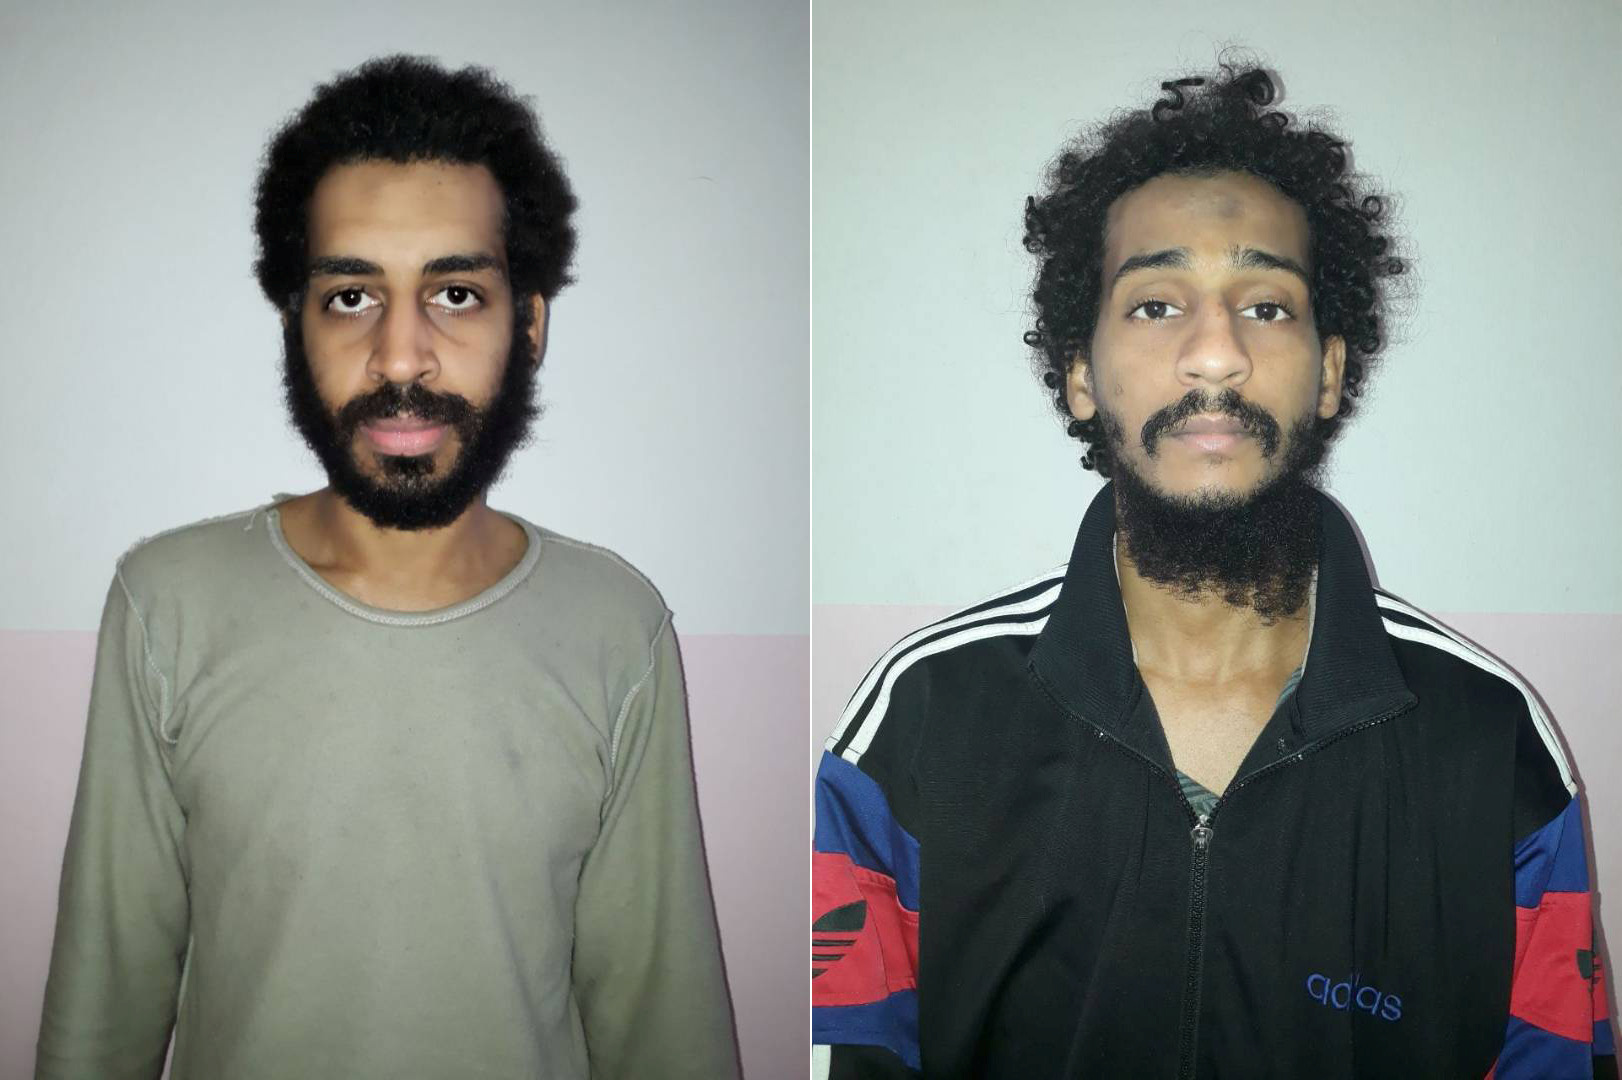 Two ISIS terrorist 'Beatles' charged with slaying American hostages: DOJ